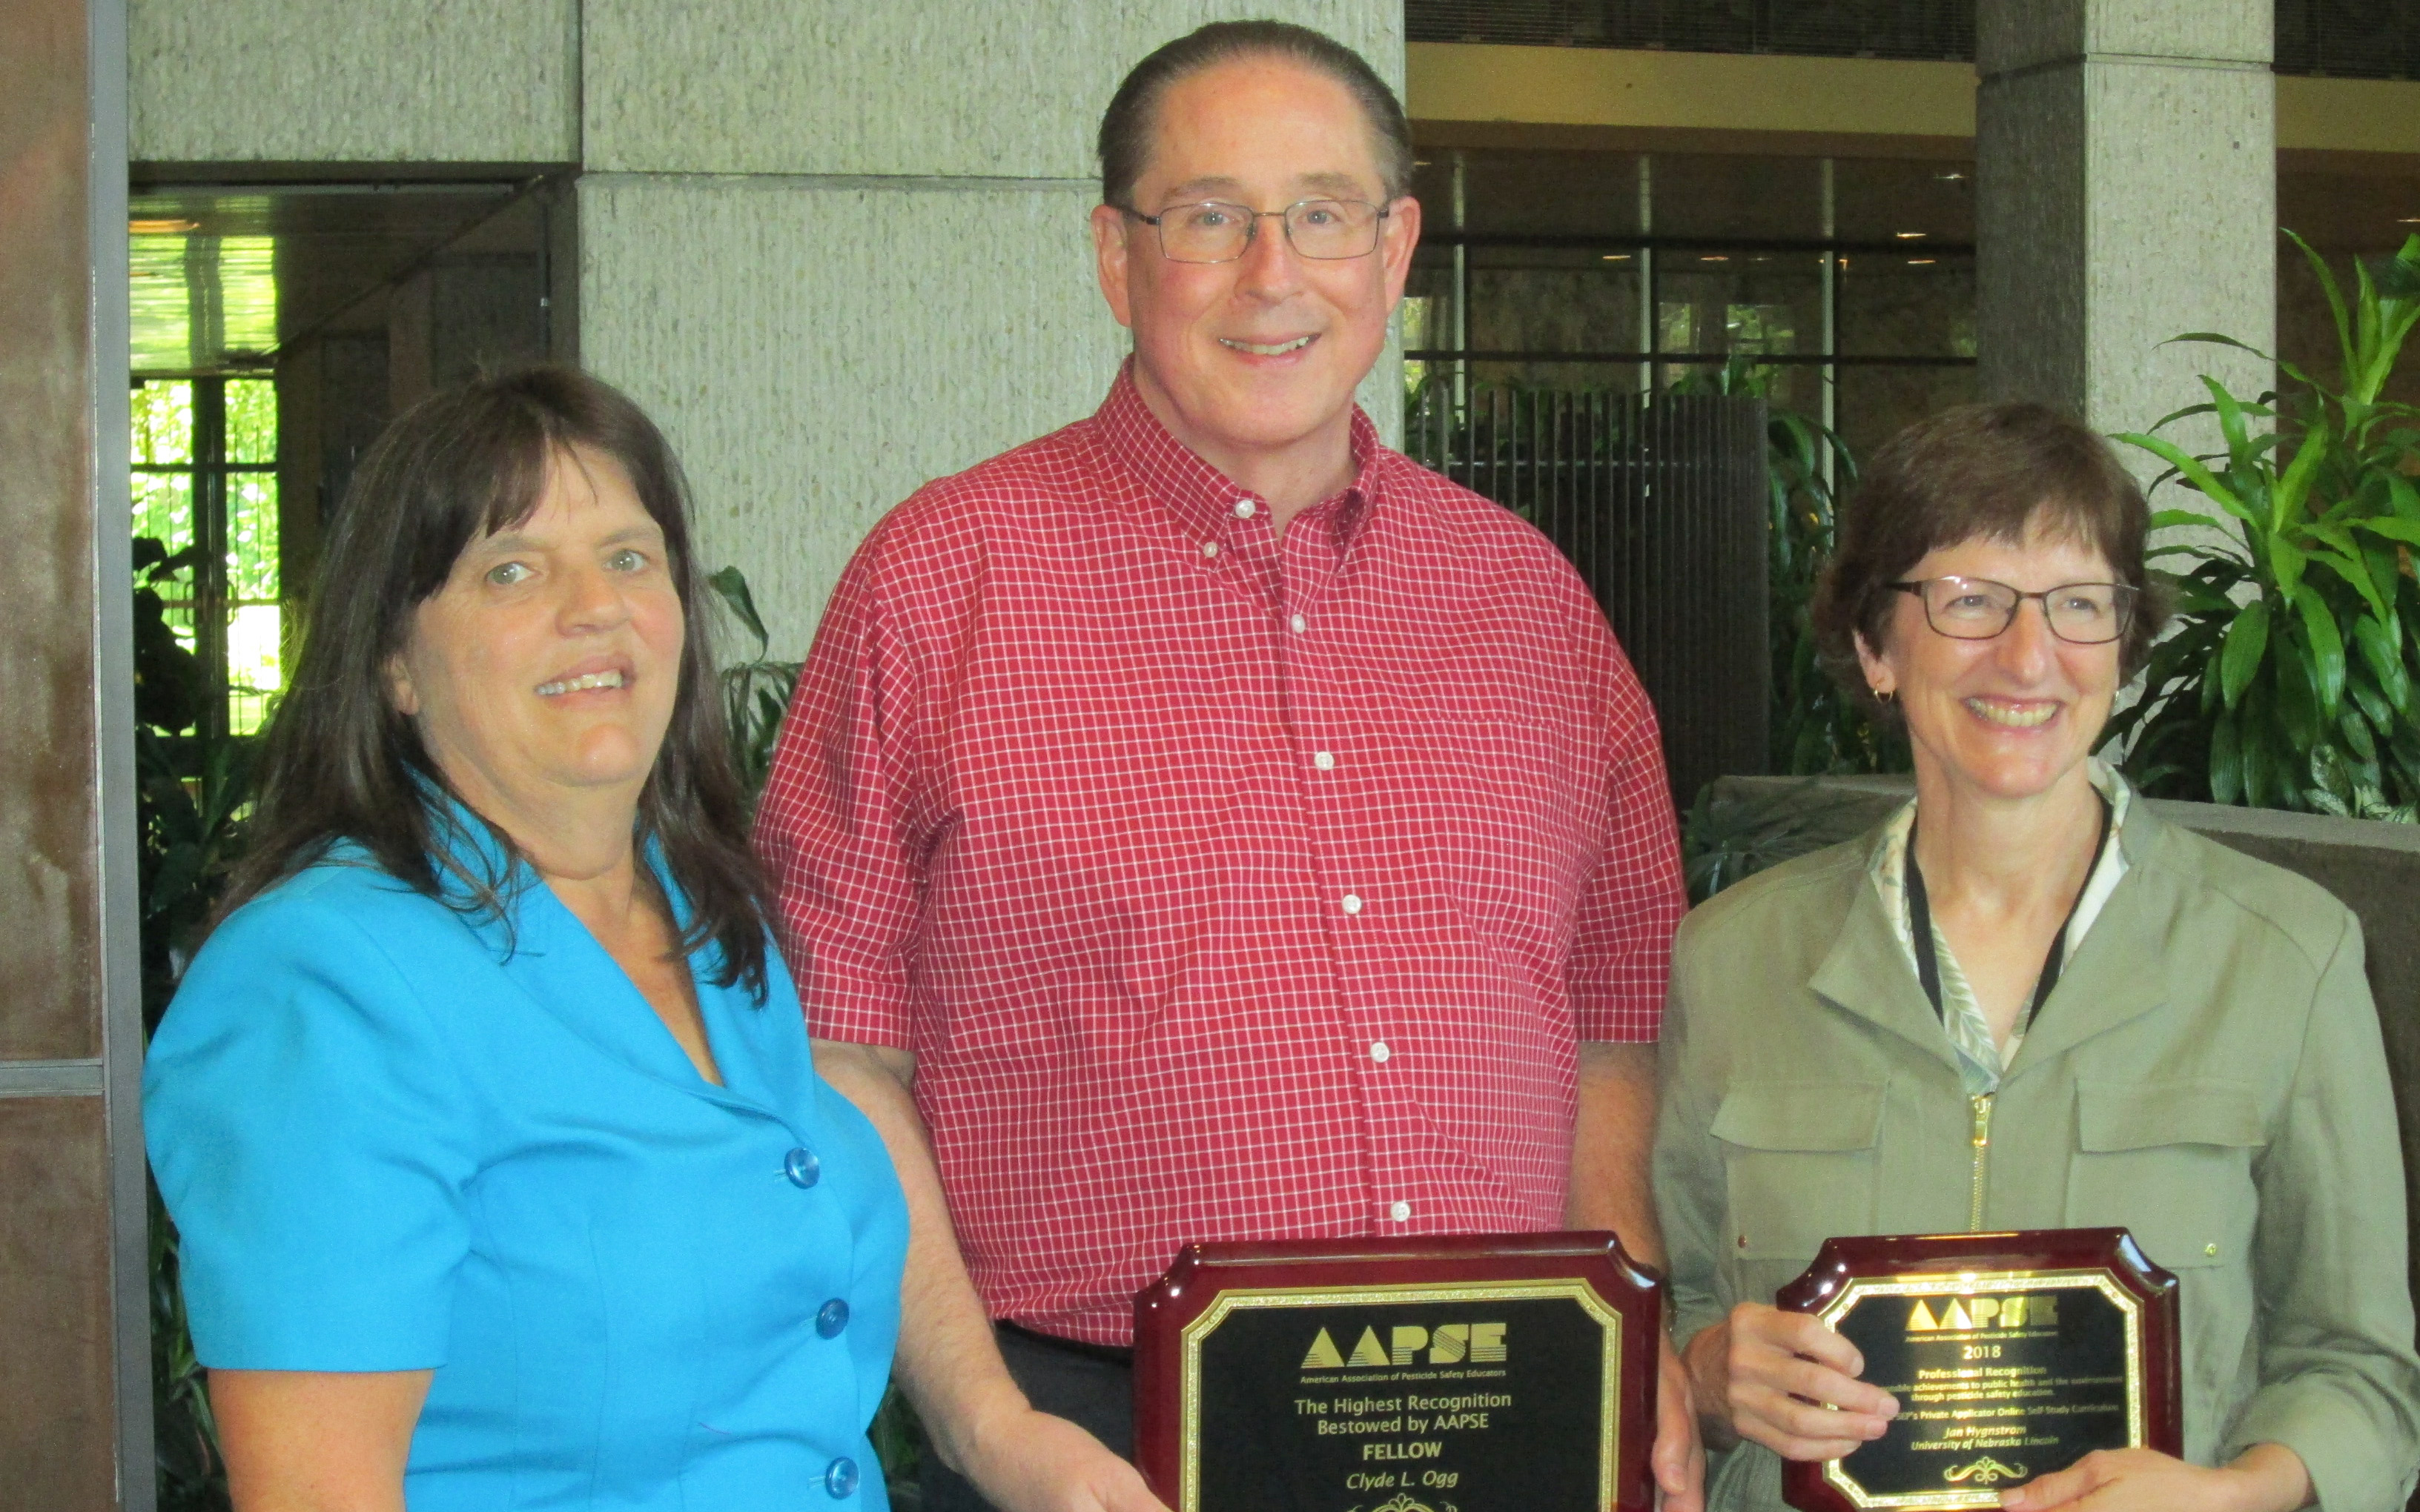 Nebraska award winners were Clyde Ogg (middle) and Jan Hygnstrom